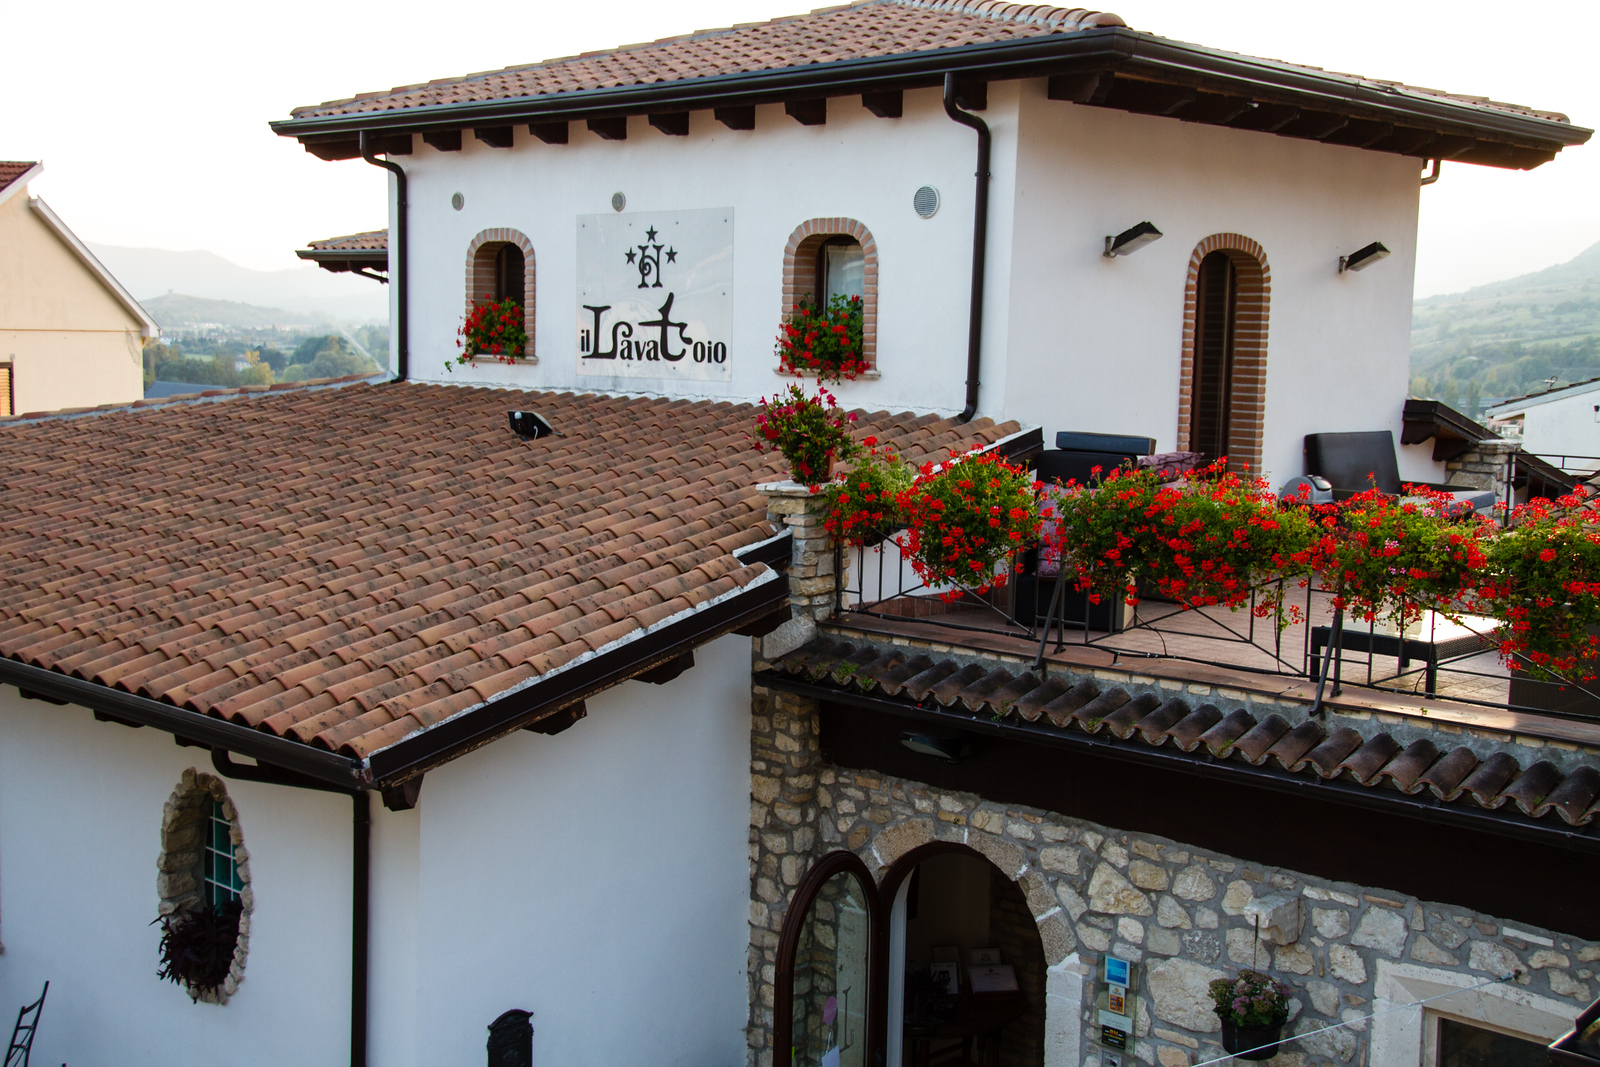 Boomer travel - Italy - Il Lavatoio in Castel di Sangro is one of our favorite places to stay in Italy. Read the rest then plan your Italy vacation.